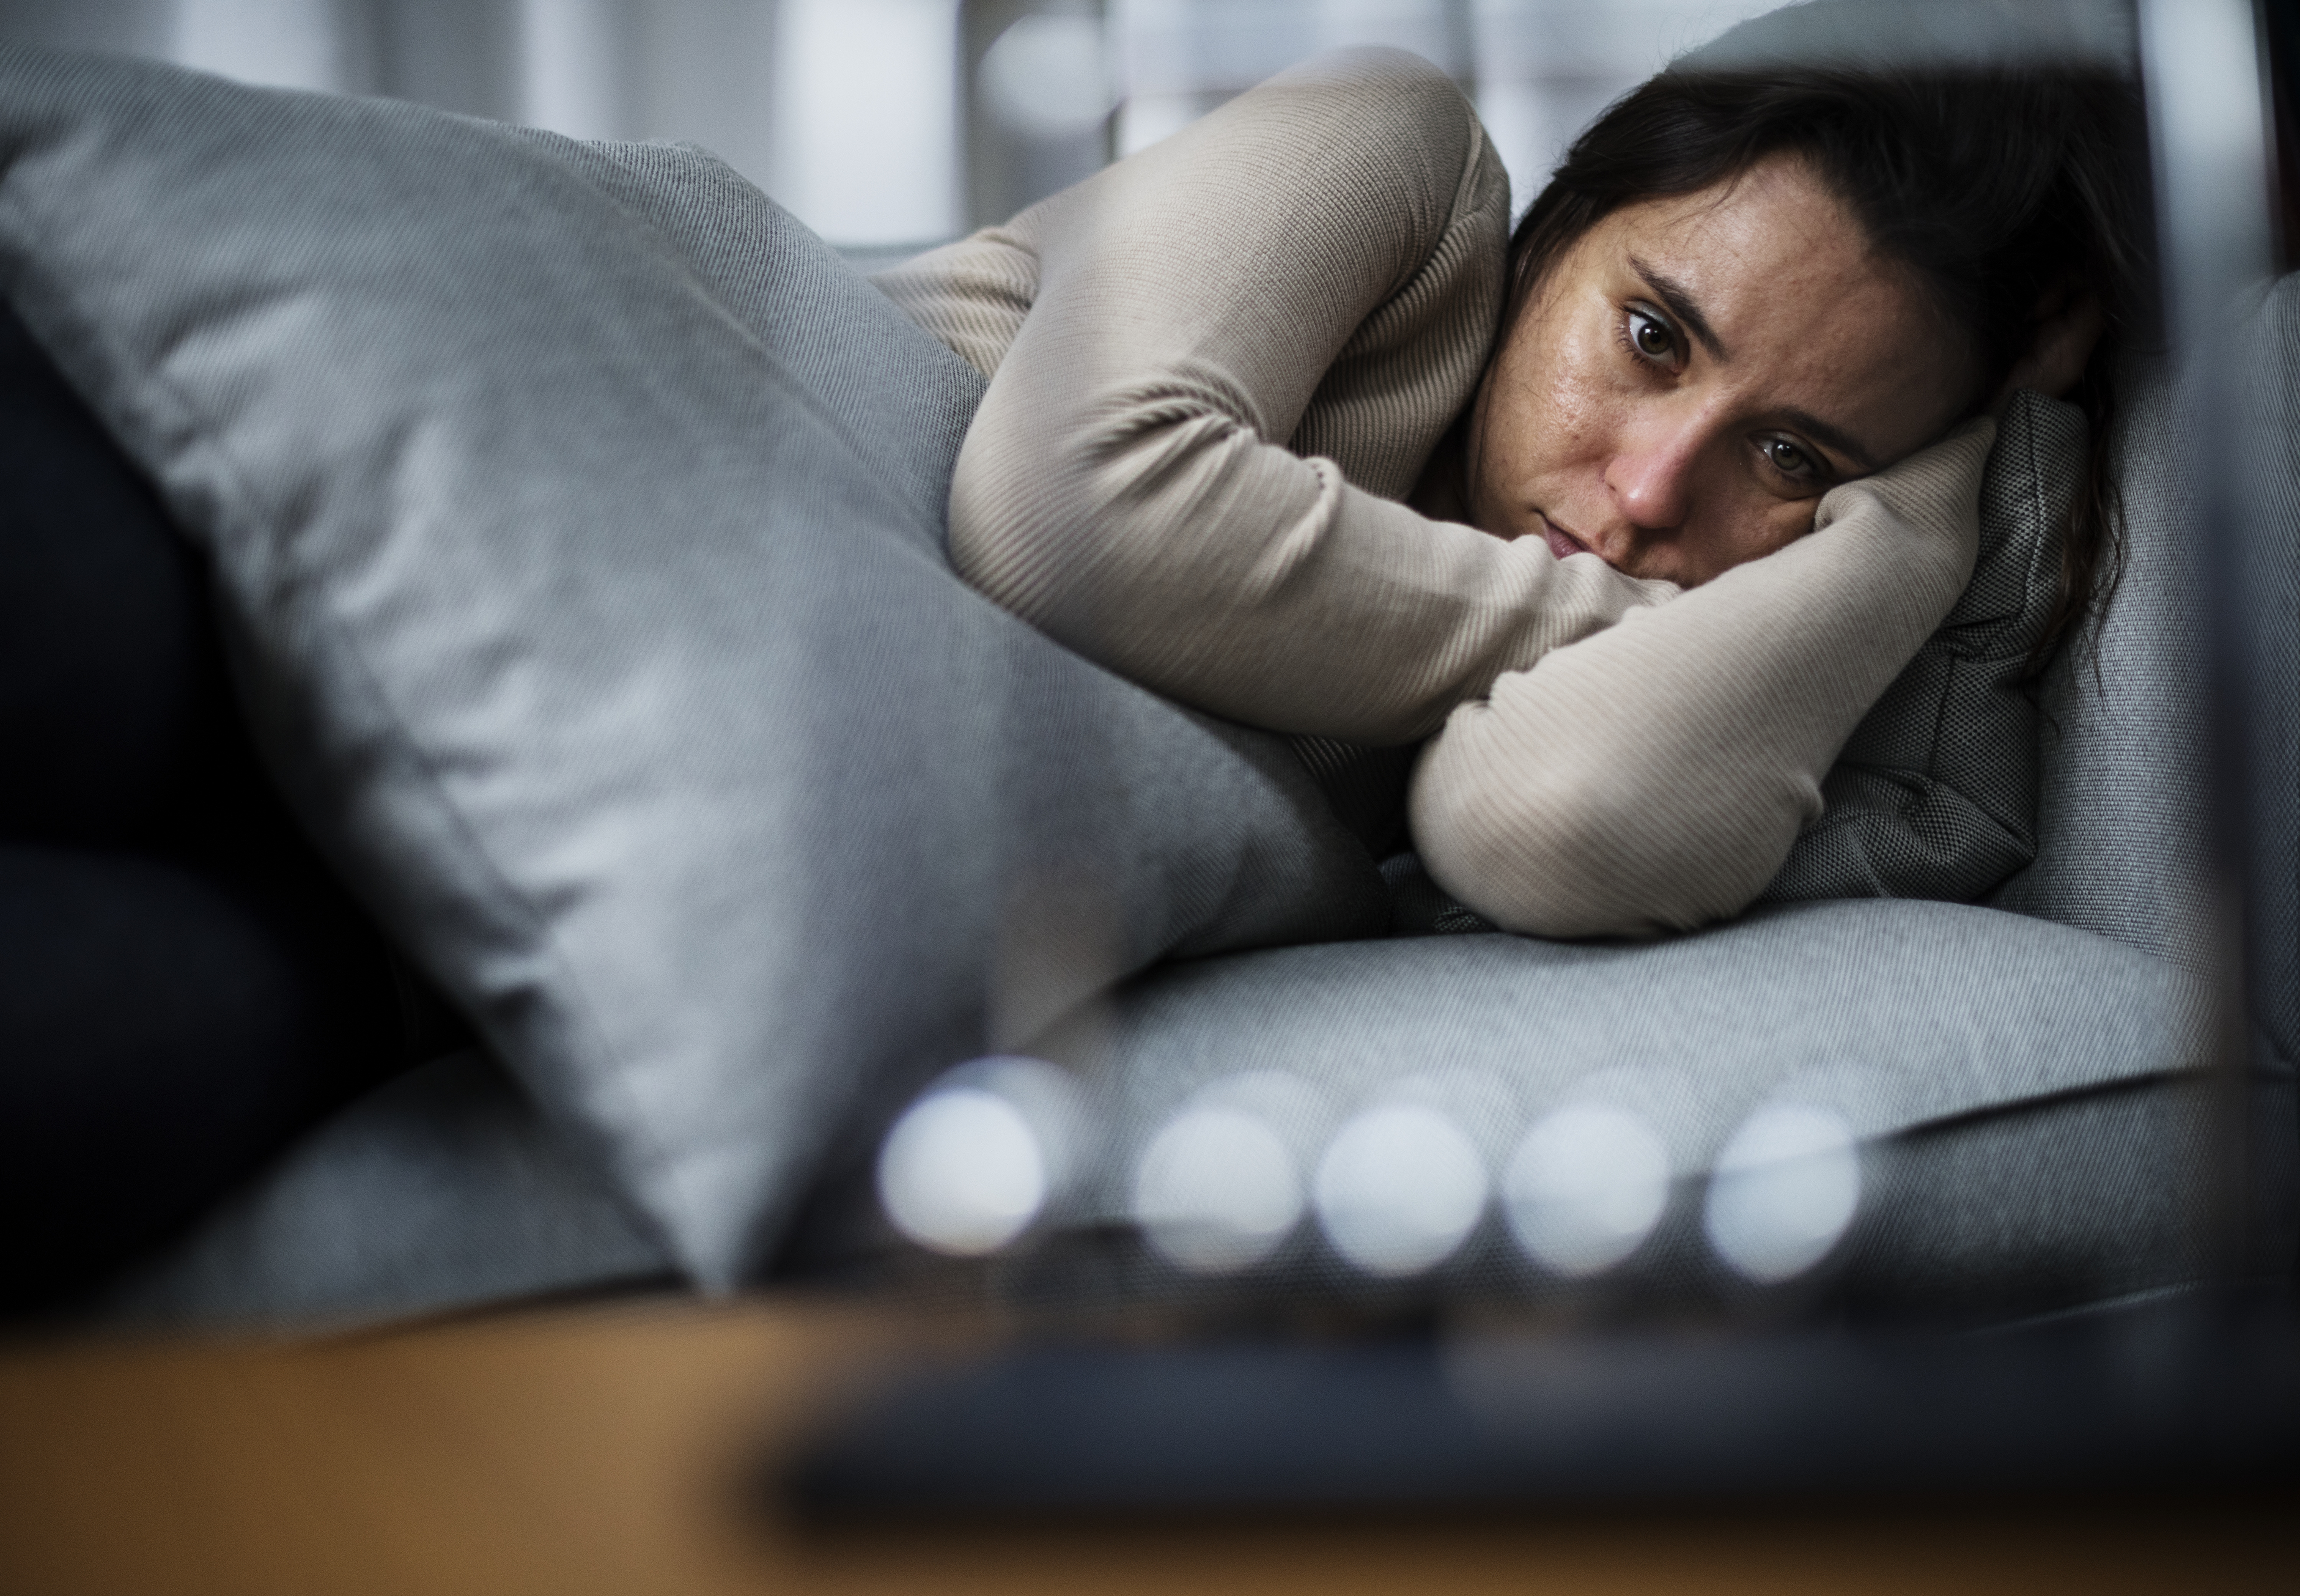 woman curled up on couch looking distraught